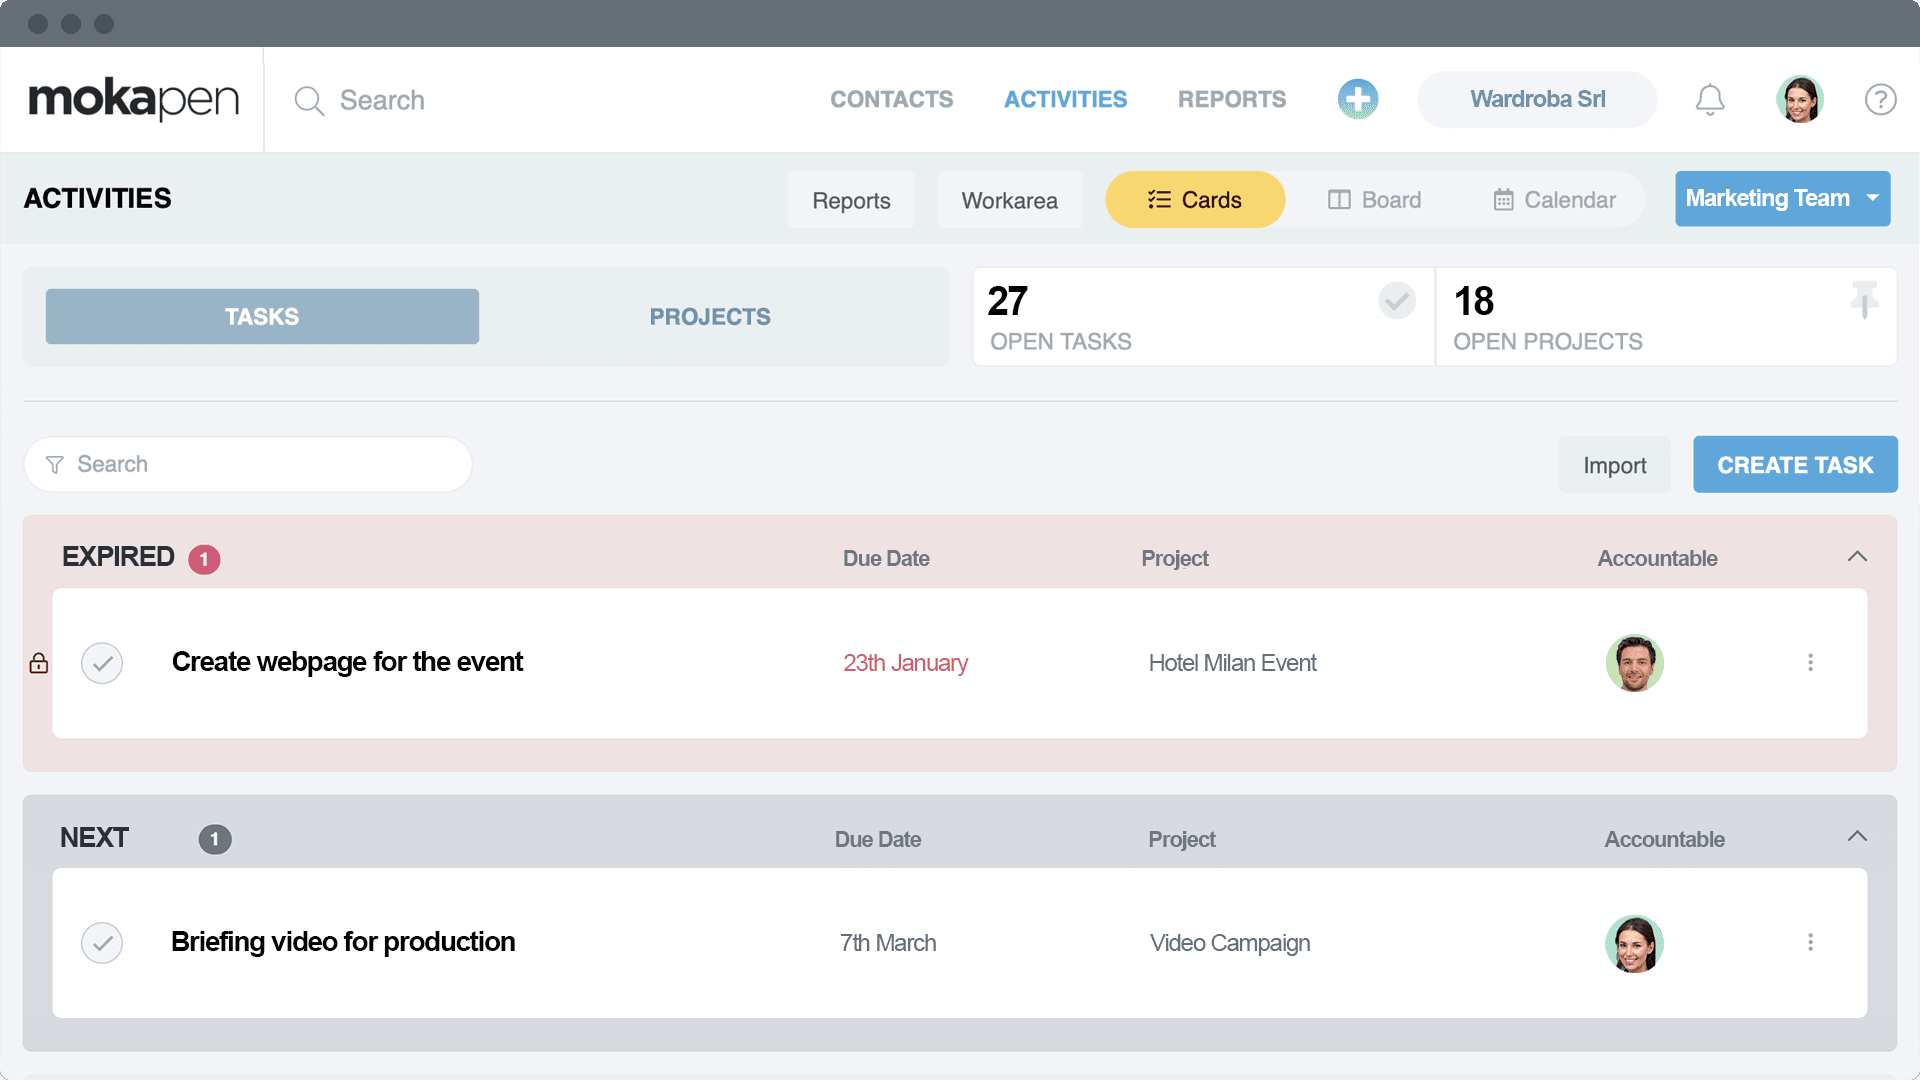 Monitor tasks and projects before they expire. Organize them, assign them and let Mokapen informing you on the agenda.<br>Filter by member or team for your review meetings.